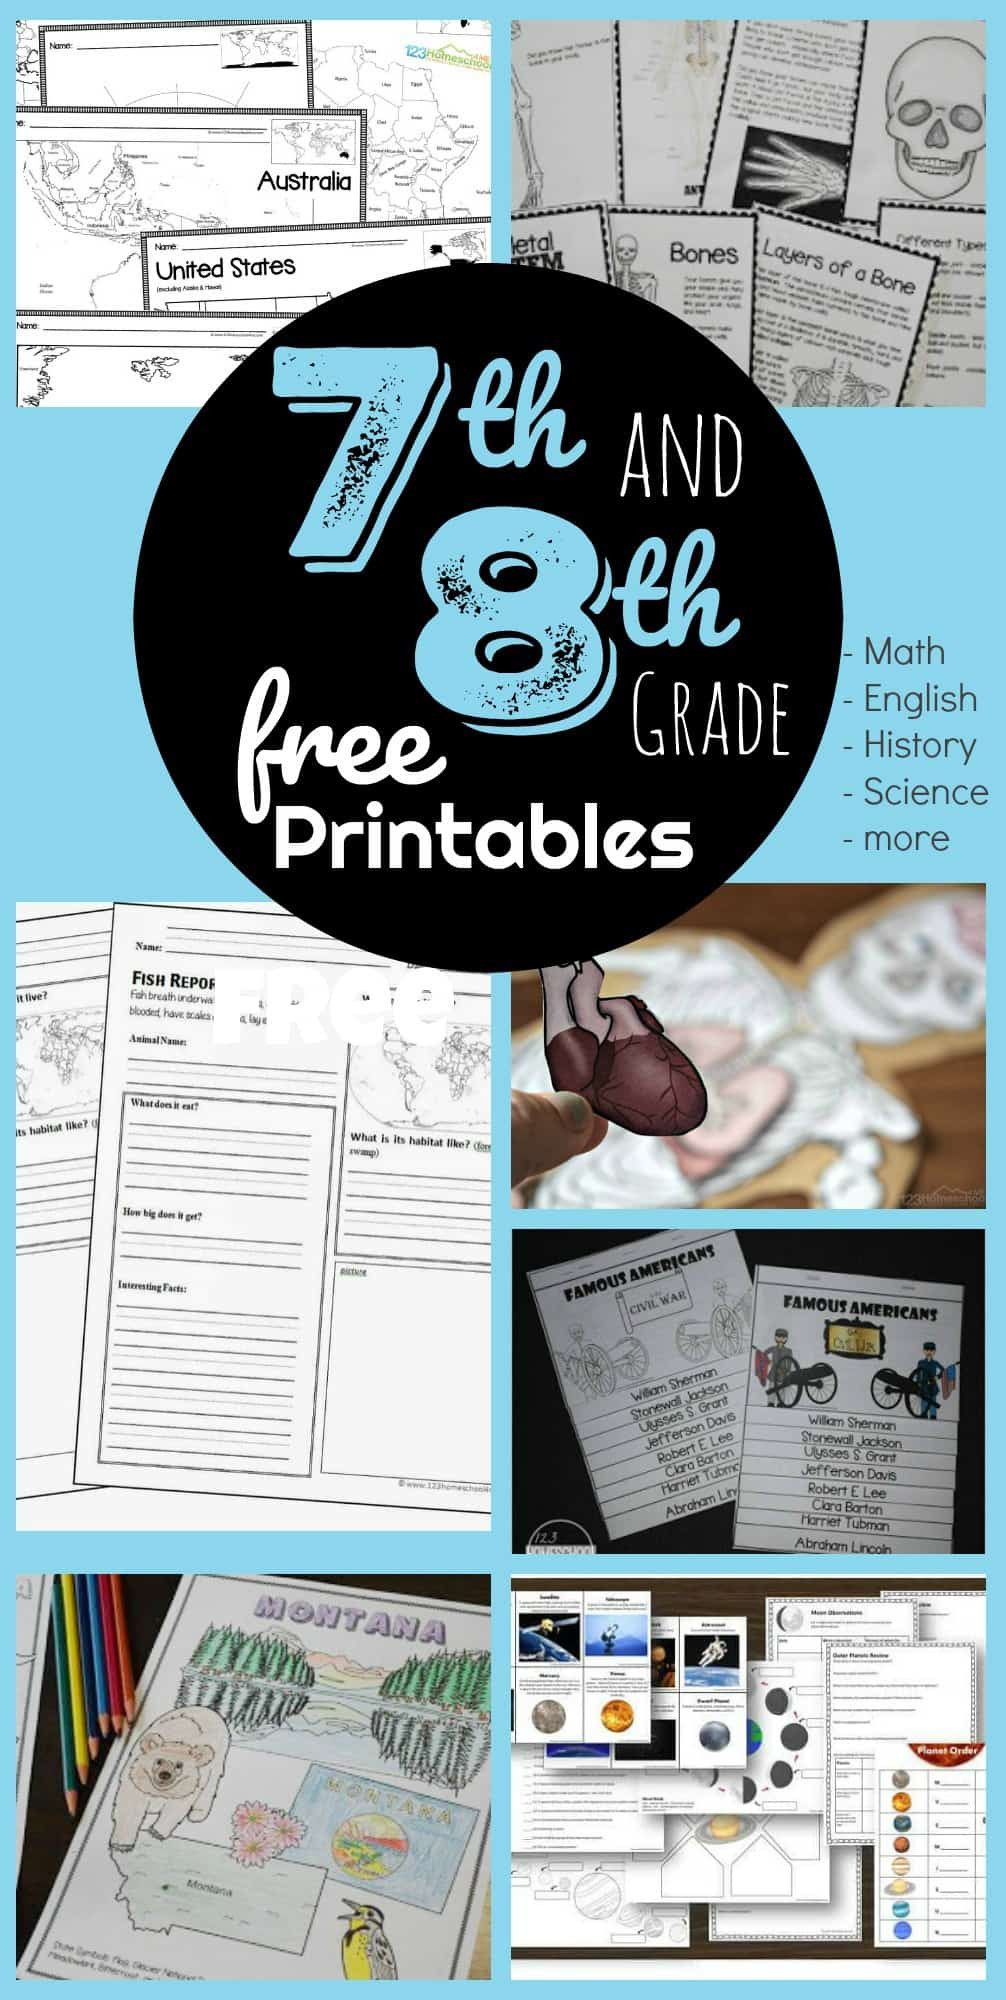 8th Grade History Worksheets Free 7th & 8th Grade Worksheets